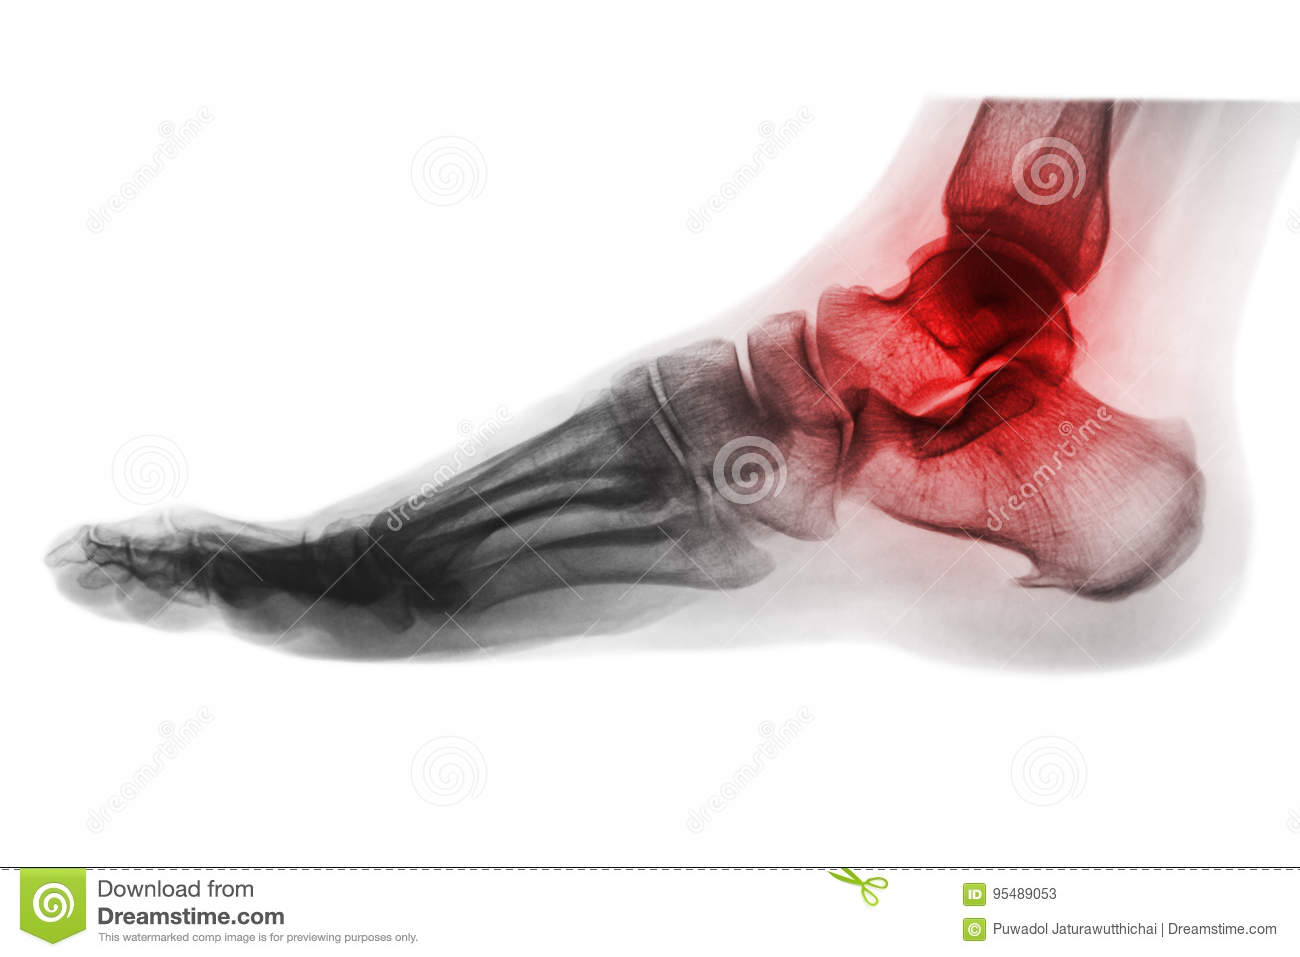 Arthritis Of Ankle   X-ray Of Foot   Lateral View   Invert